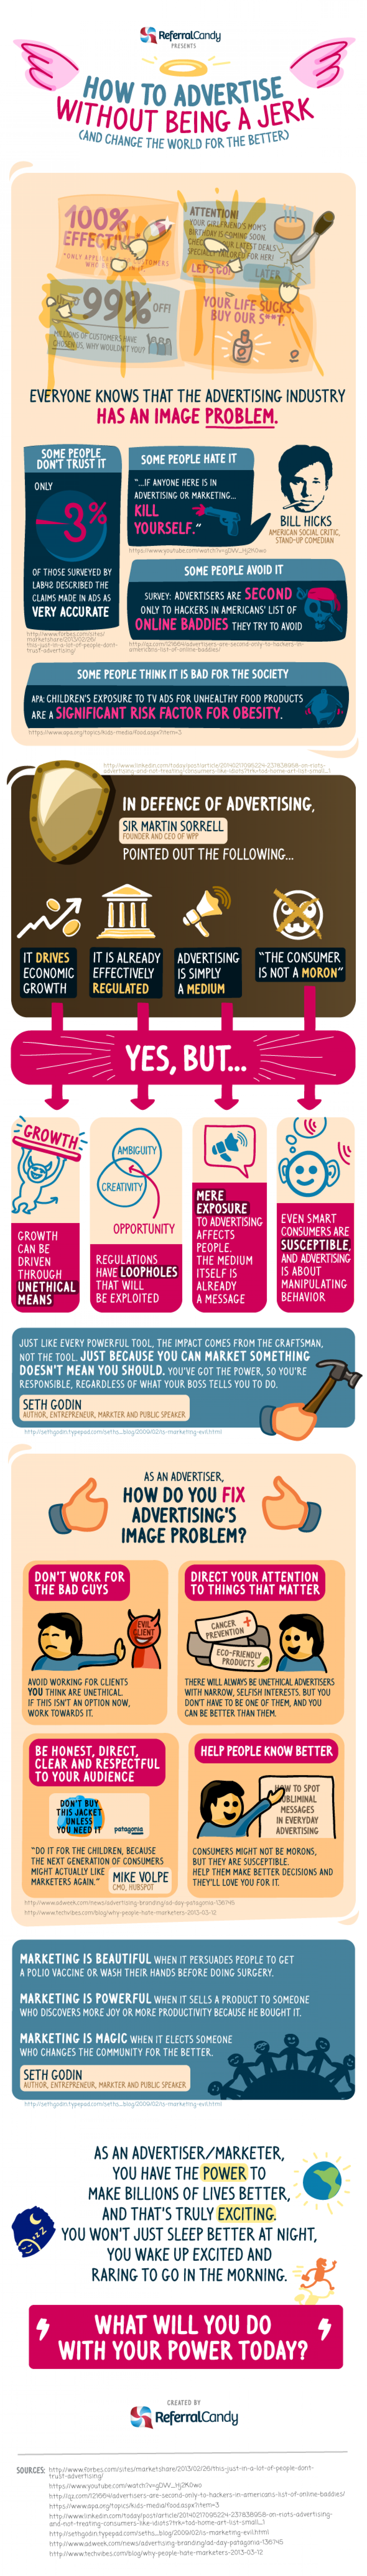 How to Advertise Without Being a Jerk Infographic